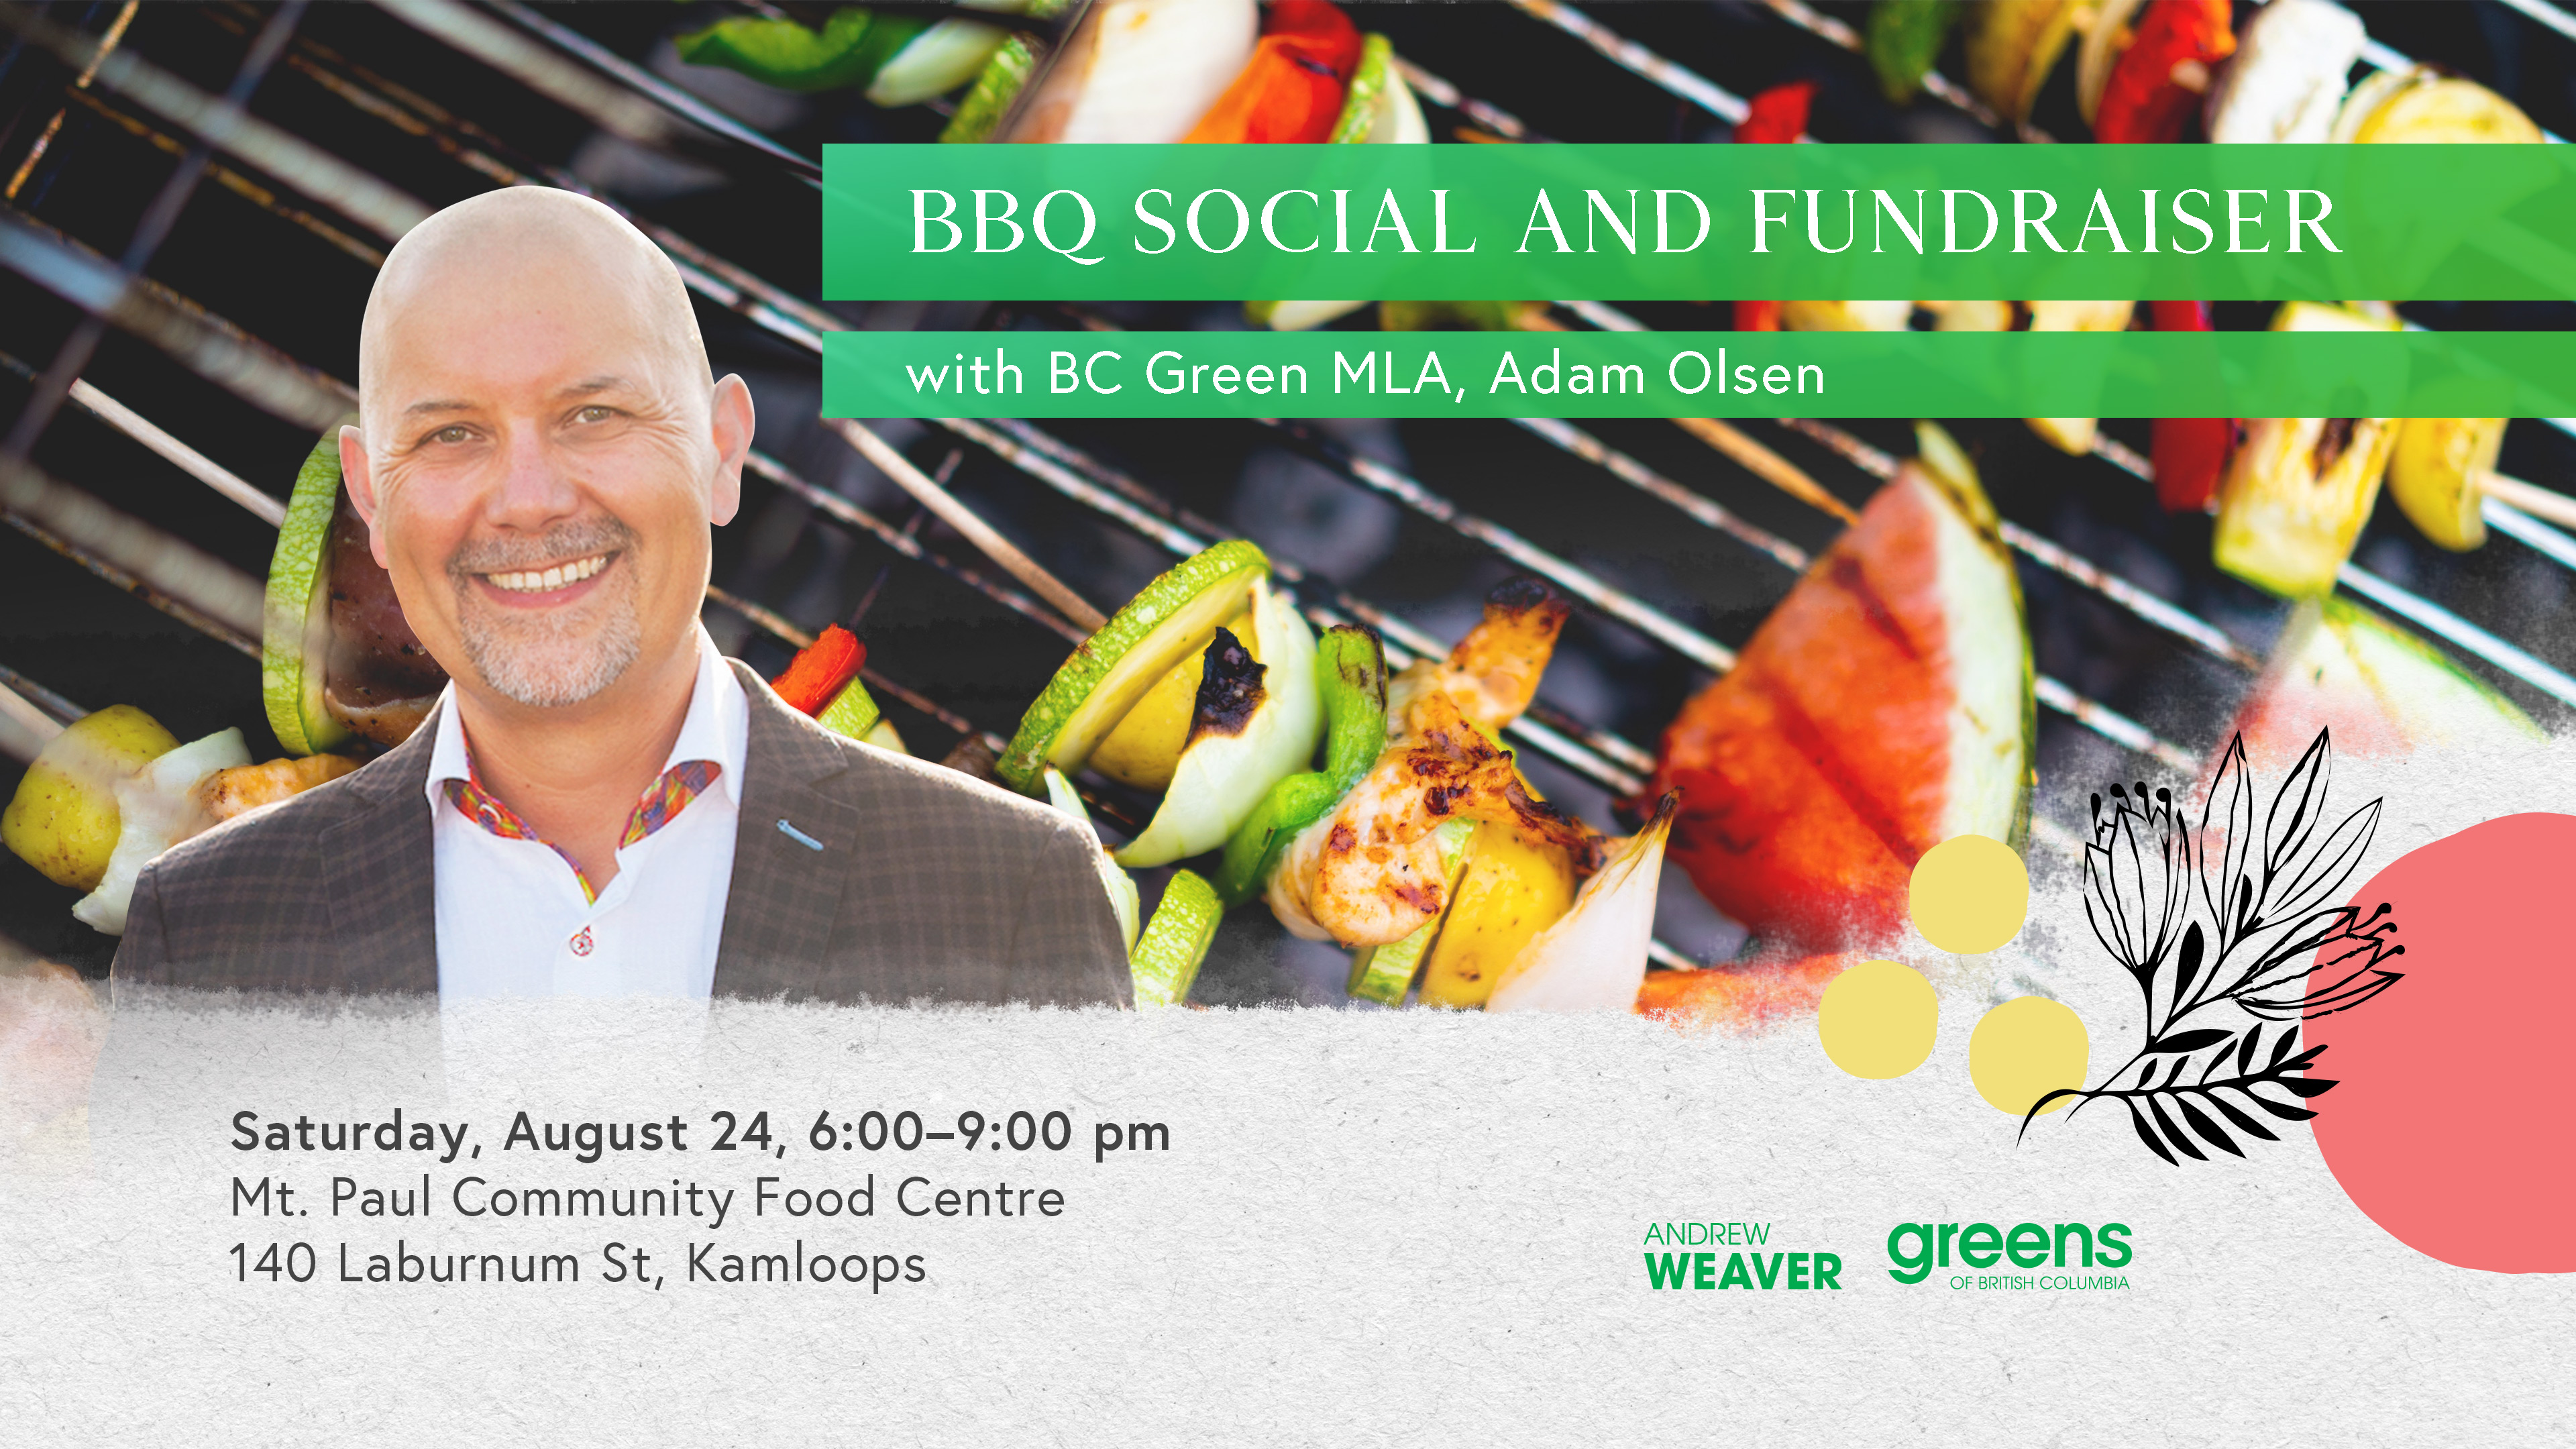 190725_-_Kamloops_-_BBQ_and_Social-Facebook_Event_Photo.jpg